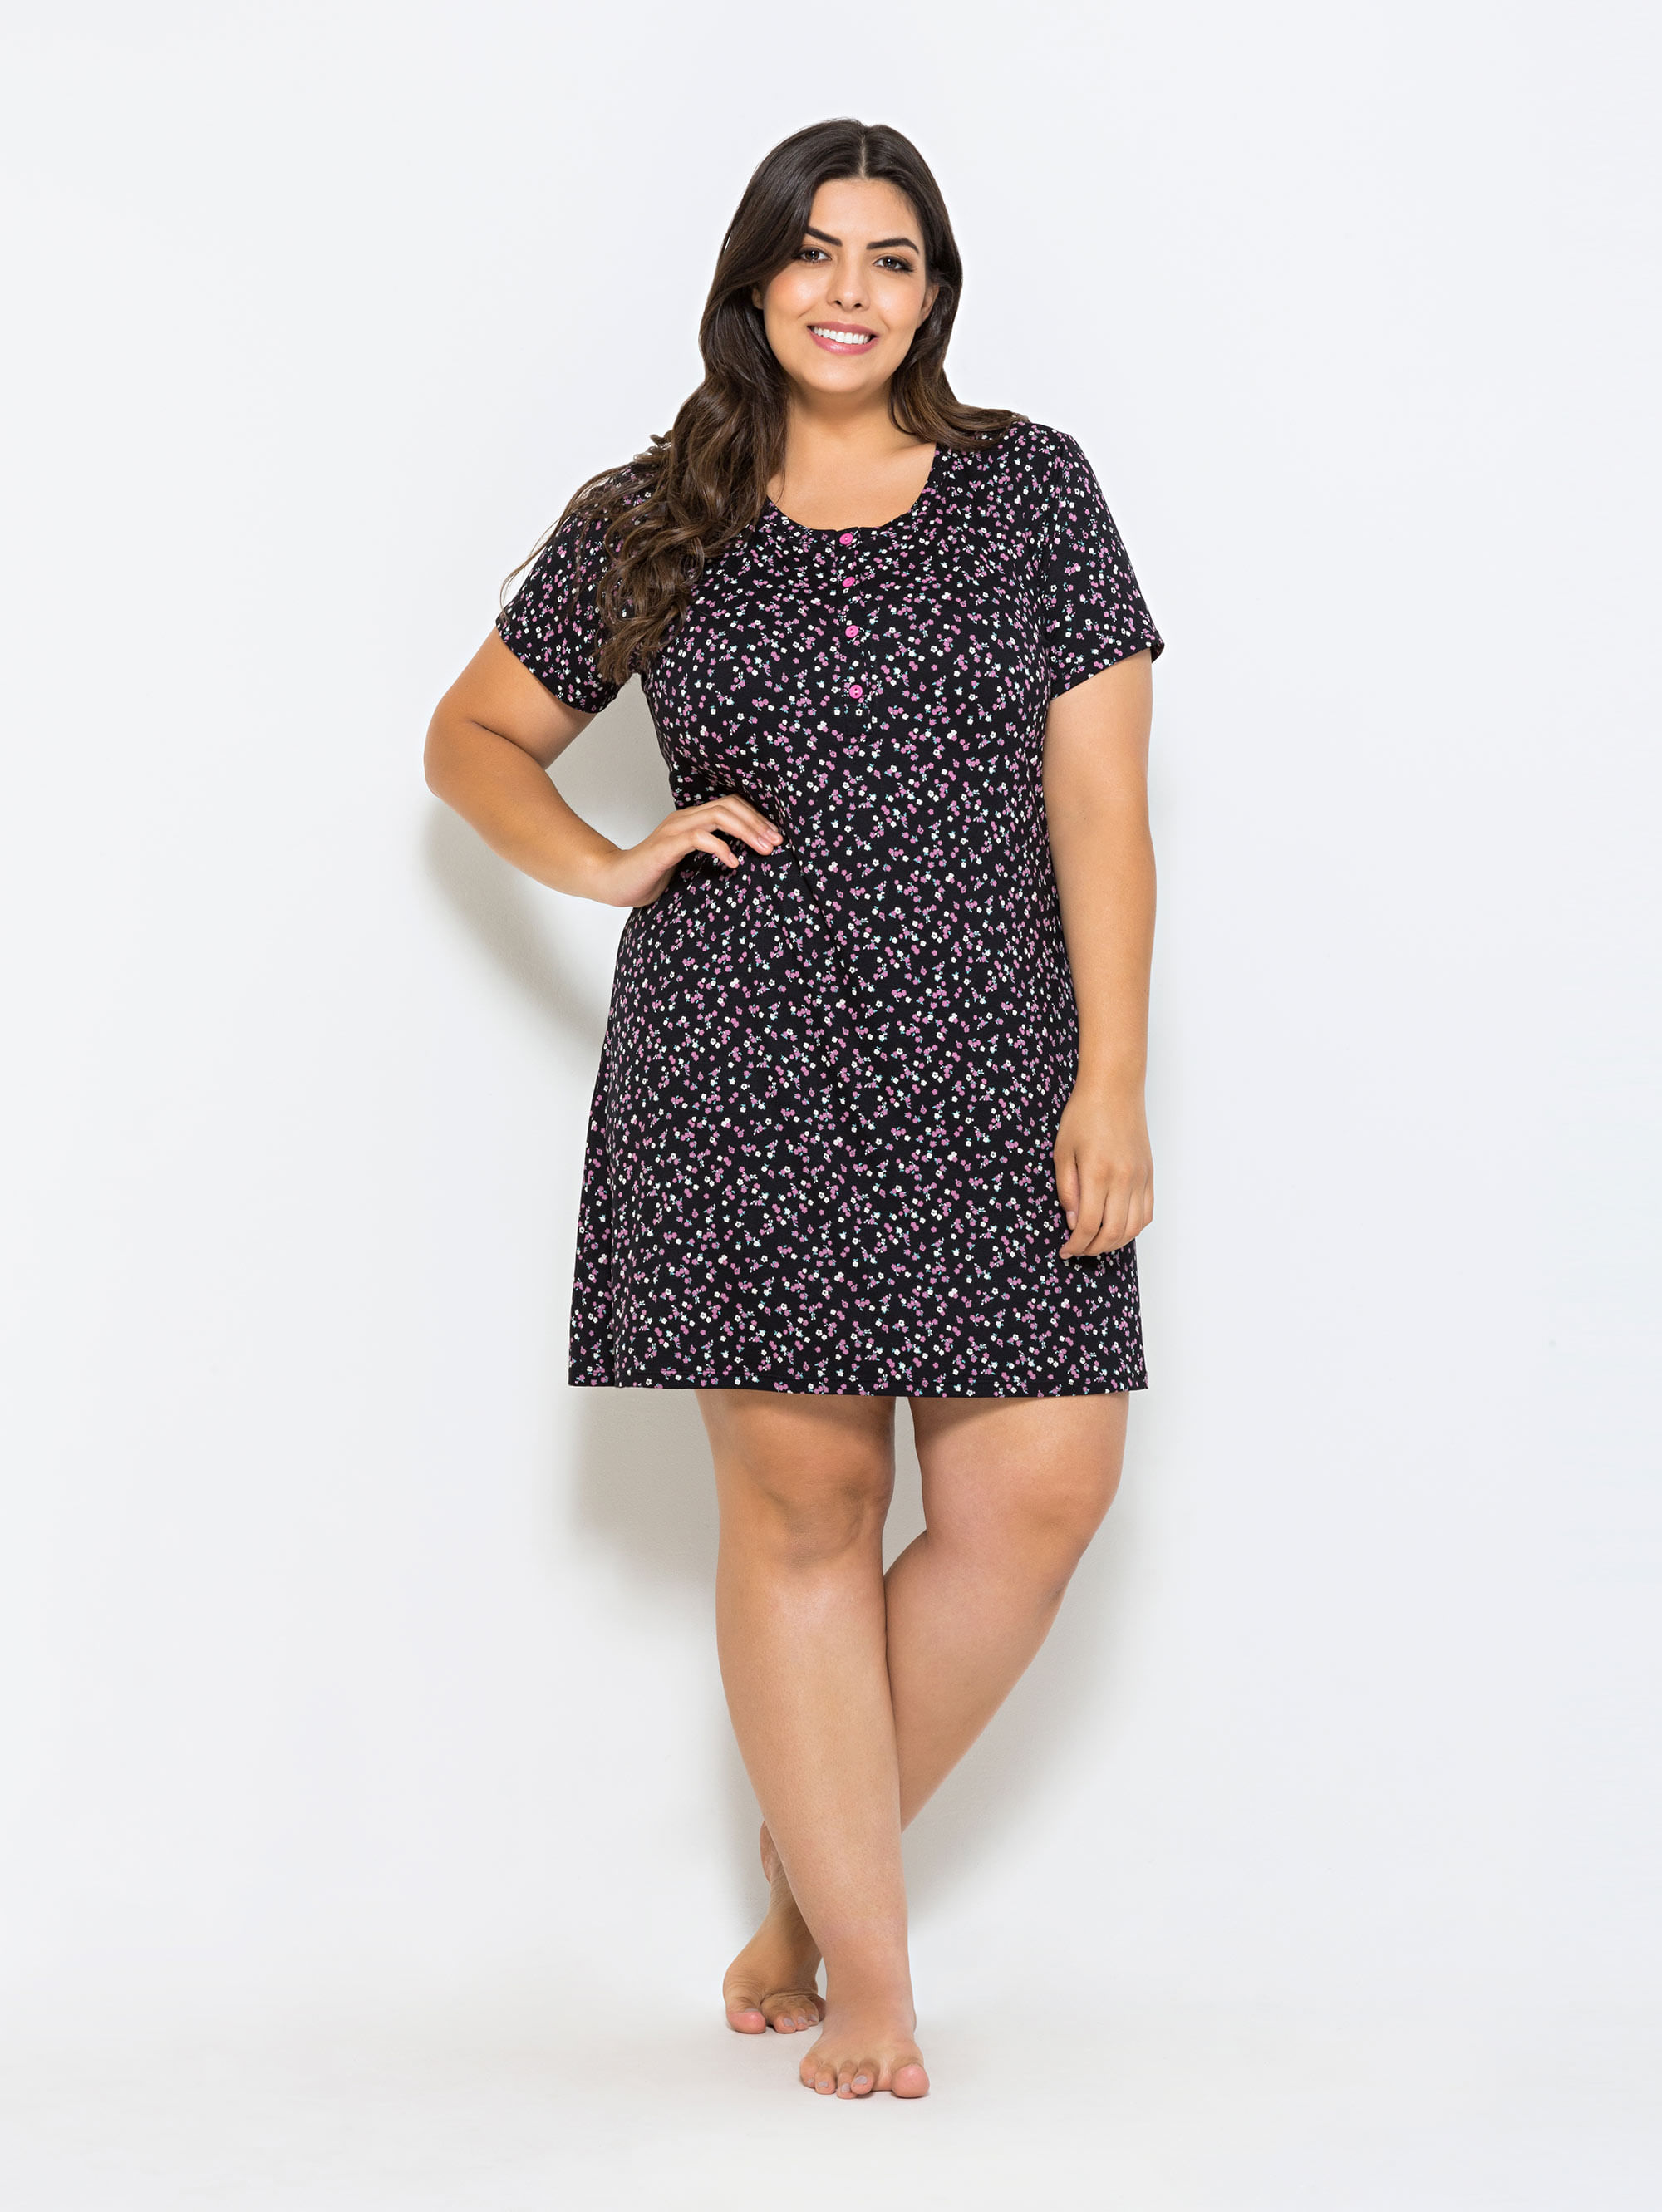 Camisola-Manga-Curta-Plus-Size-Black-Flower-01.03.1241